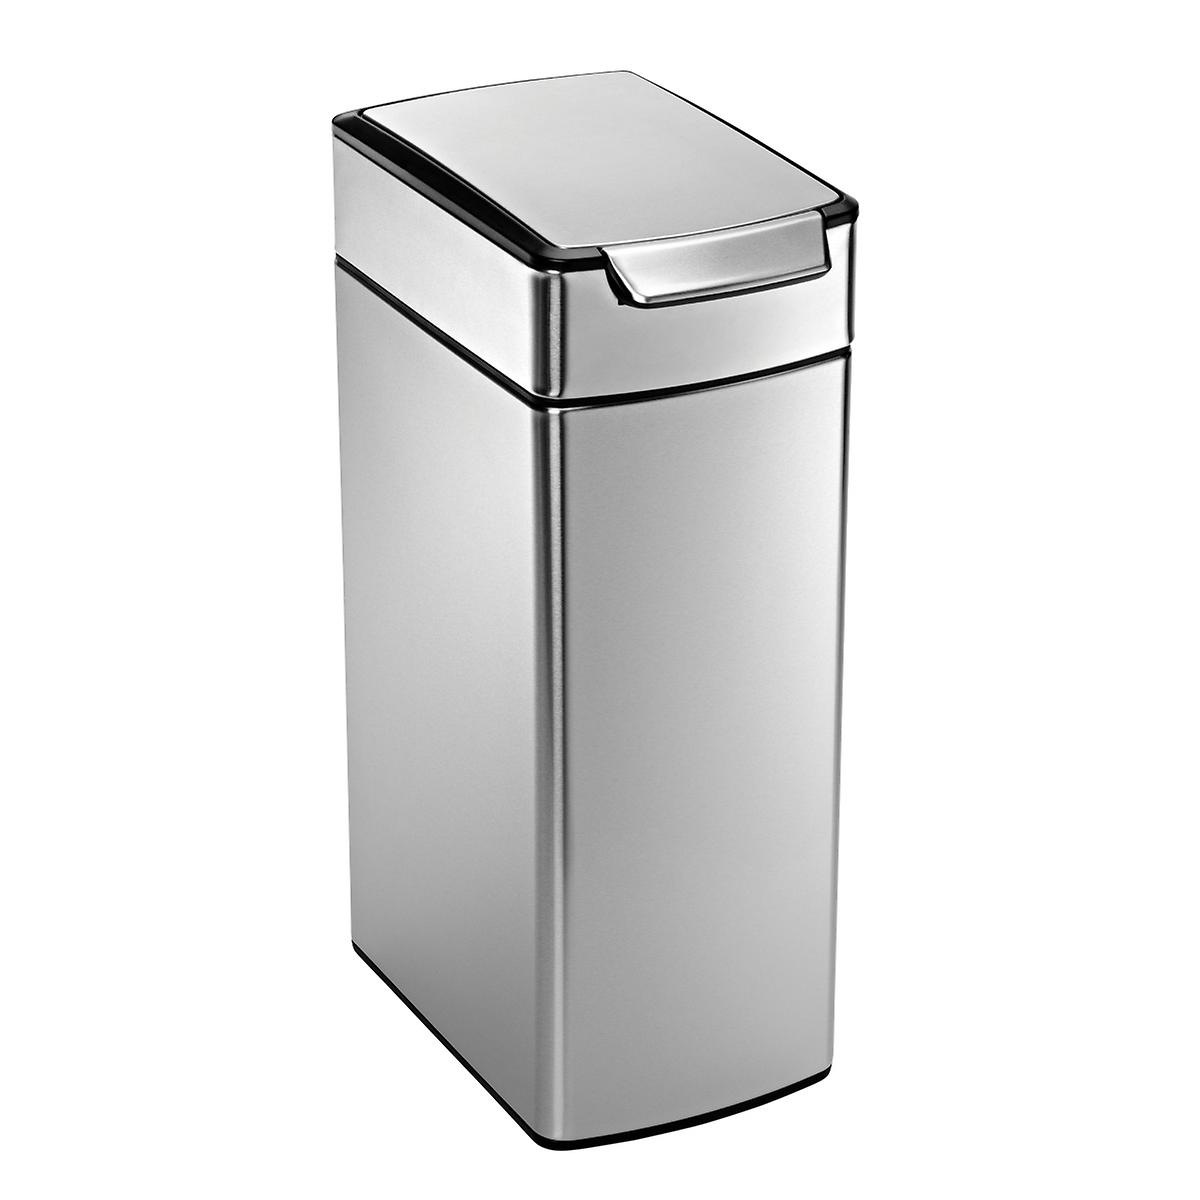 simplehuman Stainless Steel 10 gal. Slim Touch Bar Trash Can